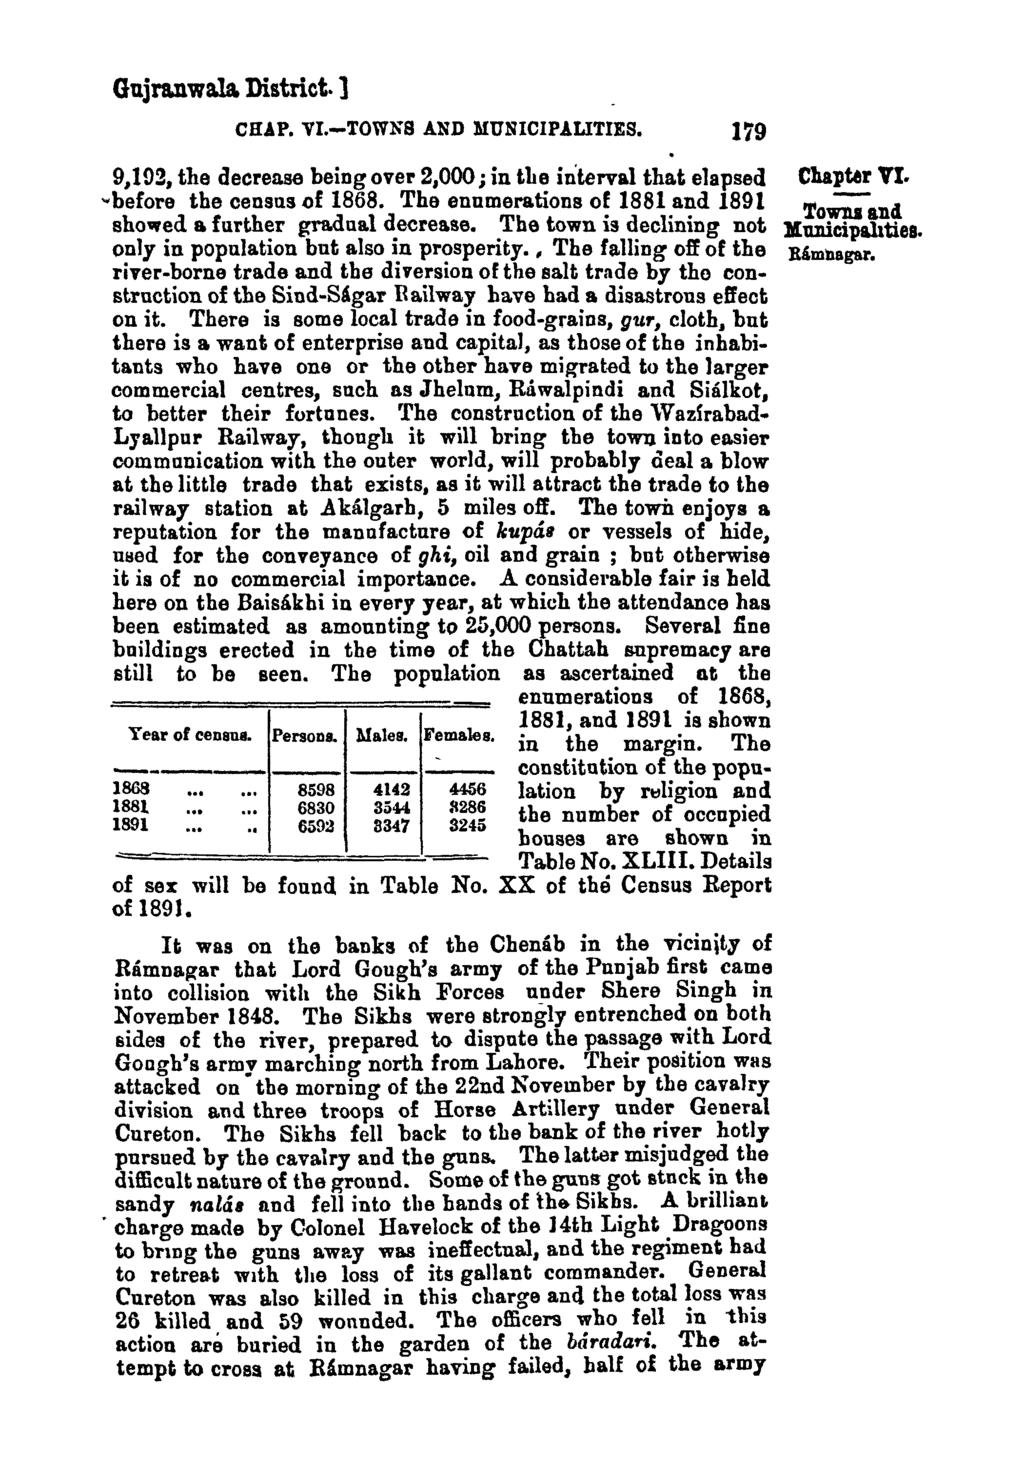 Gujra.nwala. District. ] CHAP. VI.-TOWNS AND MUNICIPALITIES. 179 9,102, the decrease being over 2,000; in tite interval that elapsed.. before the census of 1868.